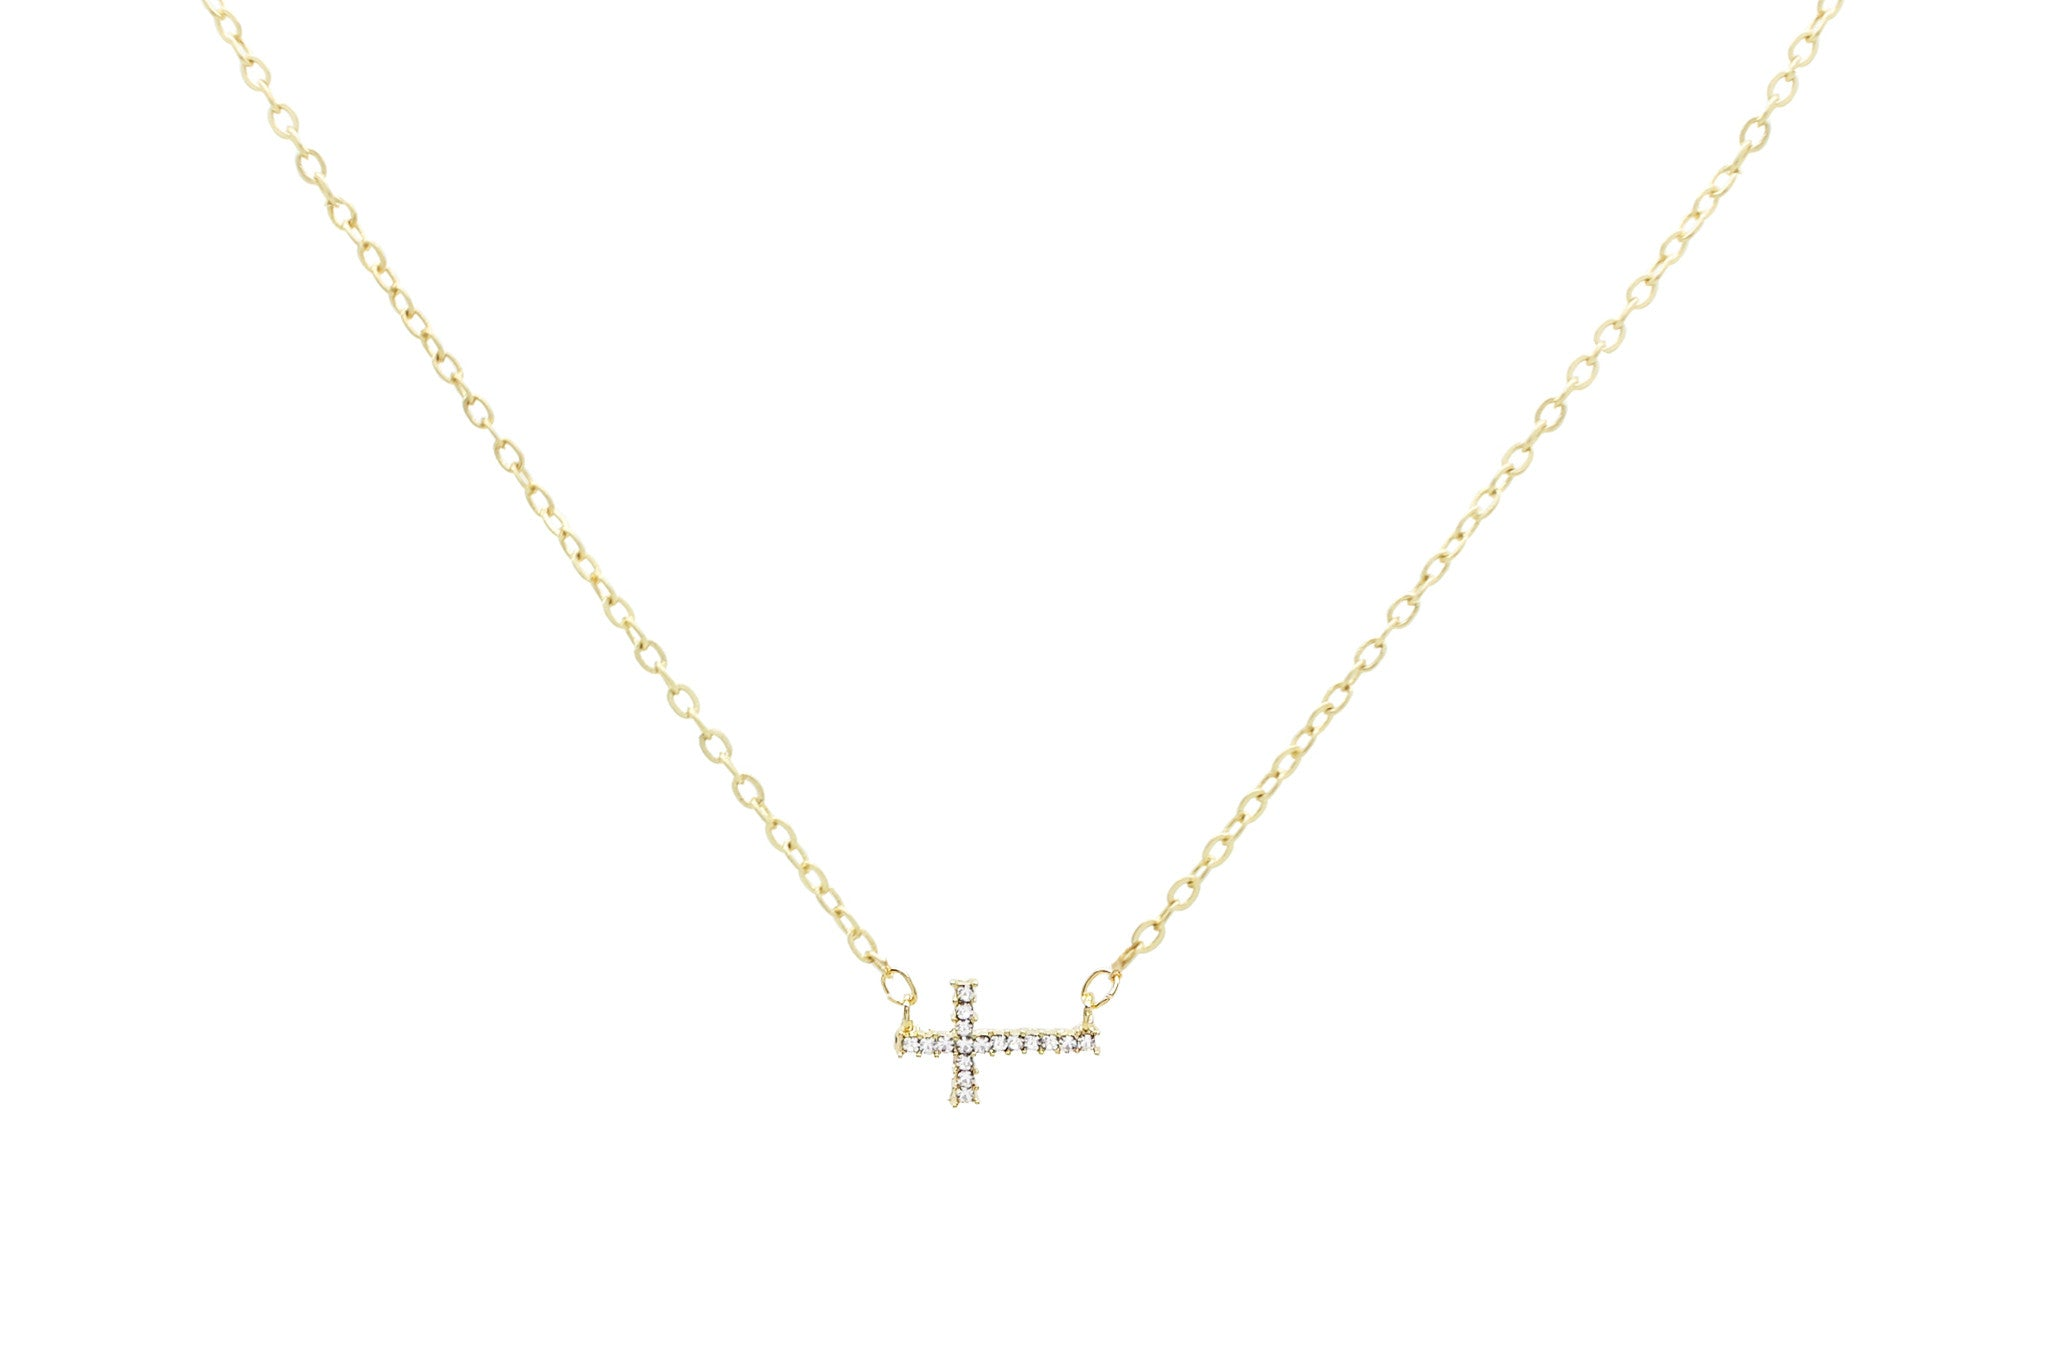 Lil Crystal Cross Necklace, Gold, Necklaces, Chic & Shine, Chic & Shine  - 1